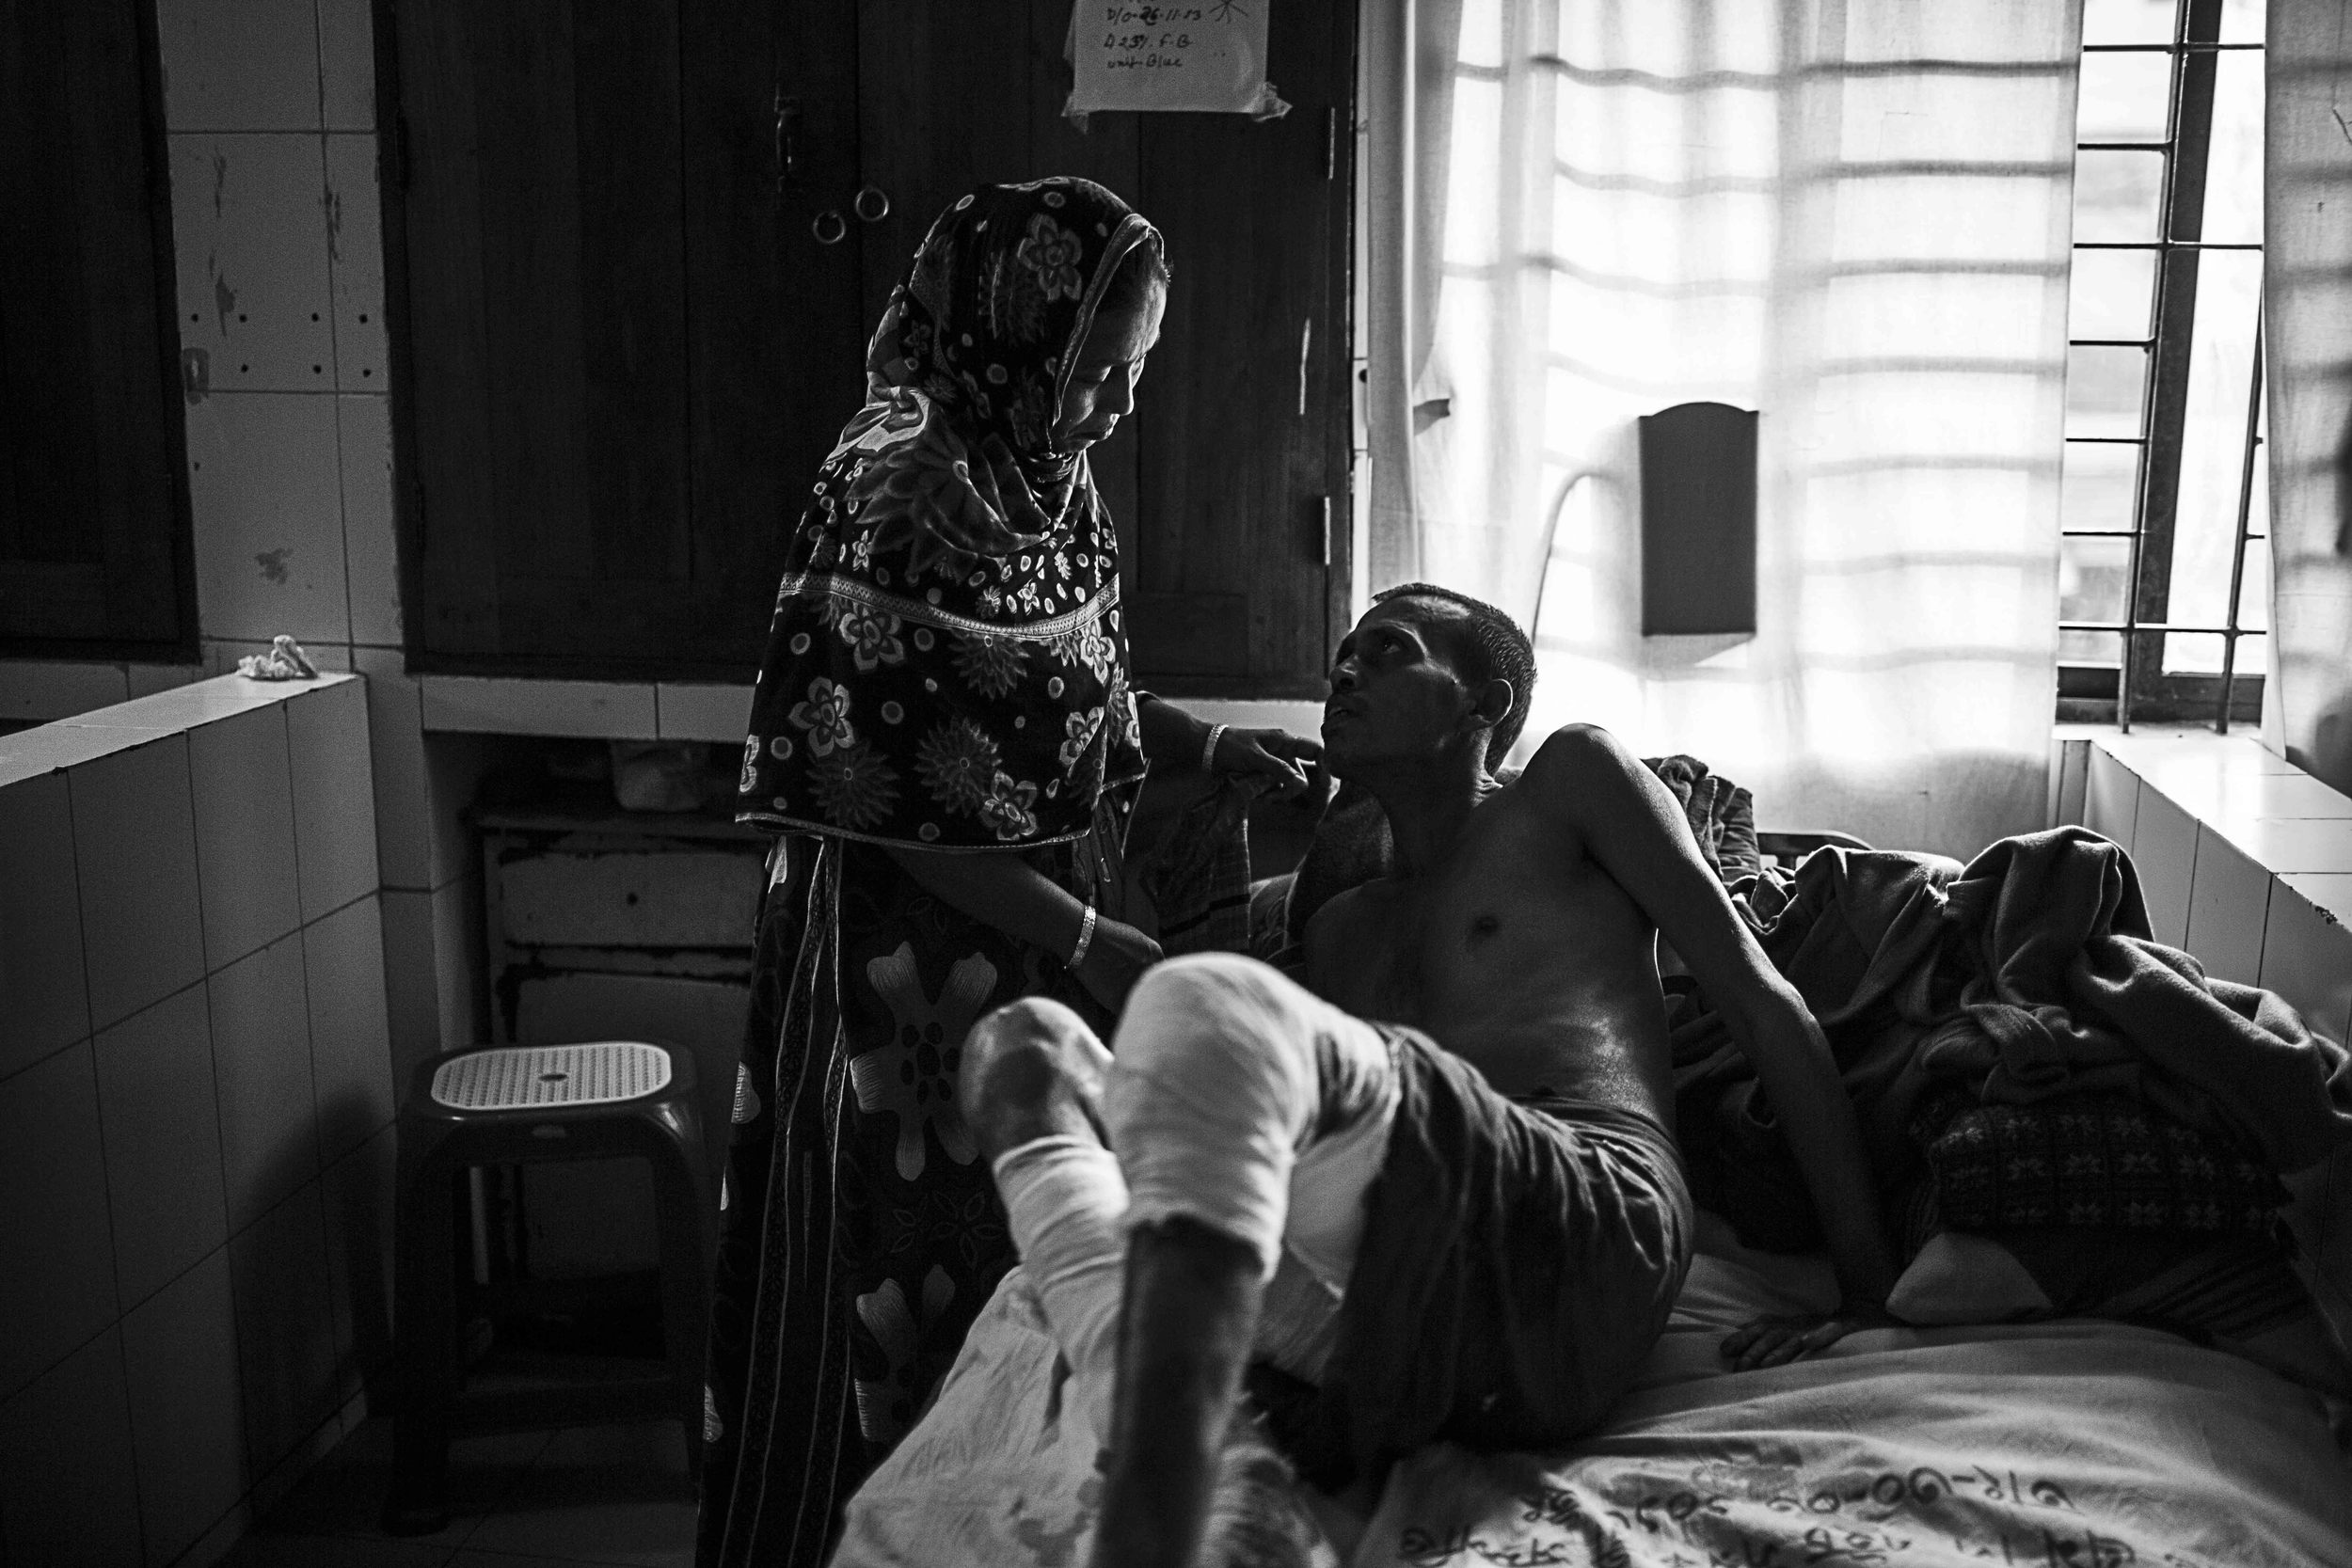 Mohammad Rubel Mia and Nasima Begum share an intimate moment between the chaos of the Burns Unit.